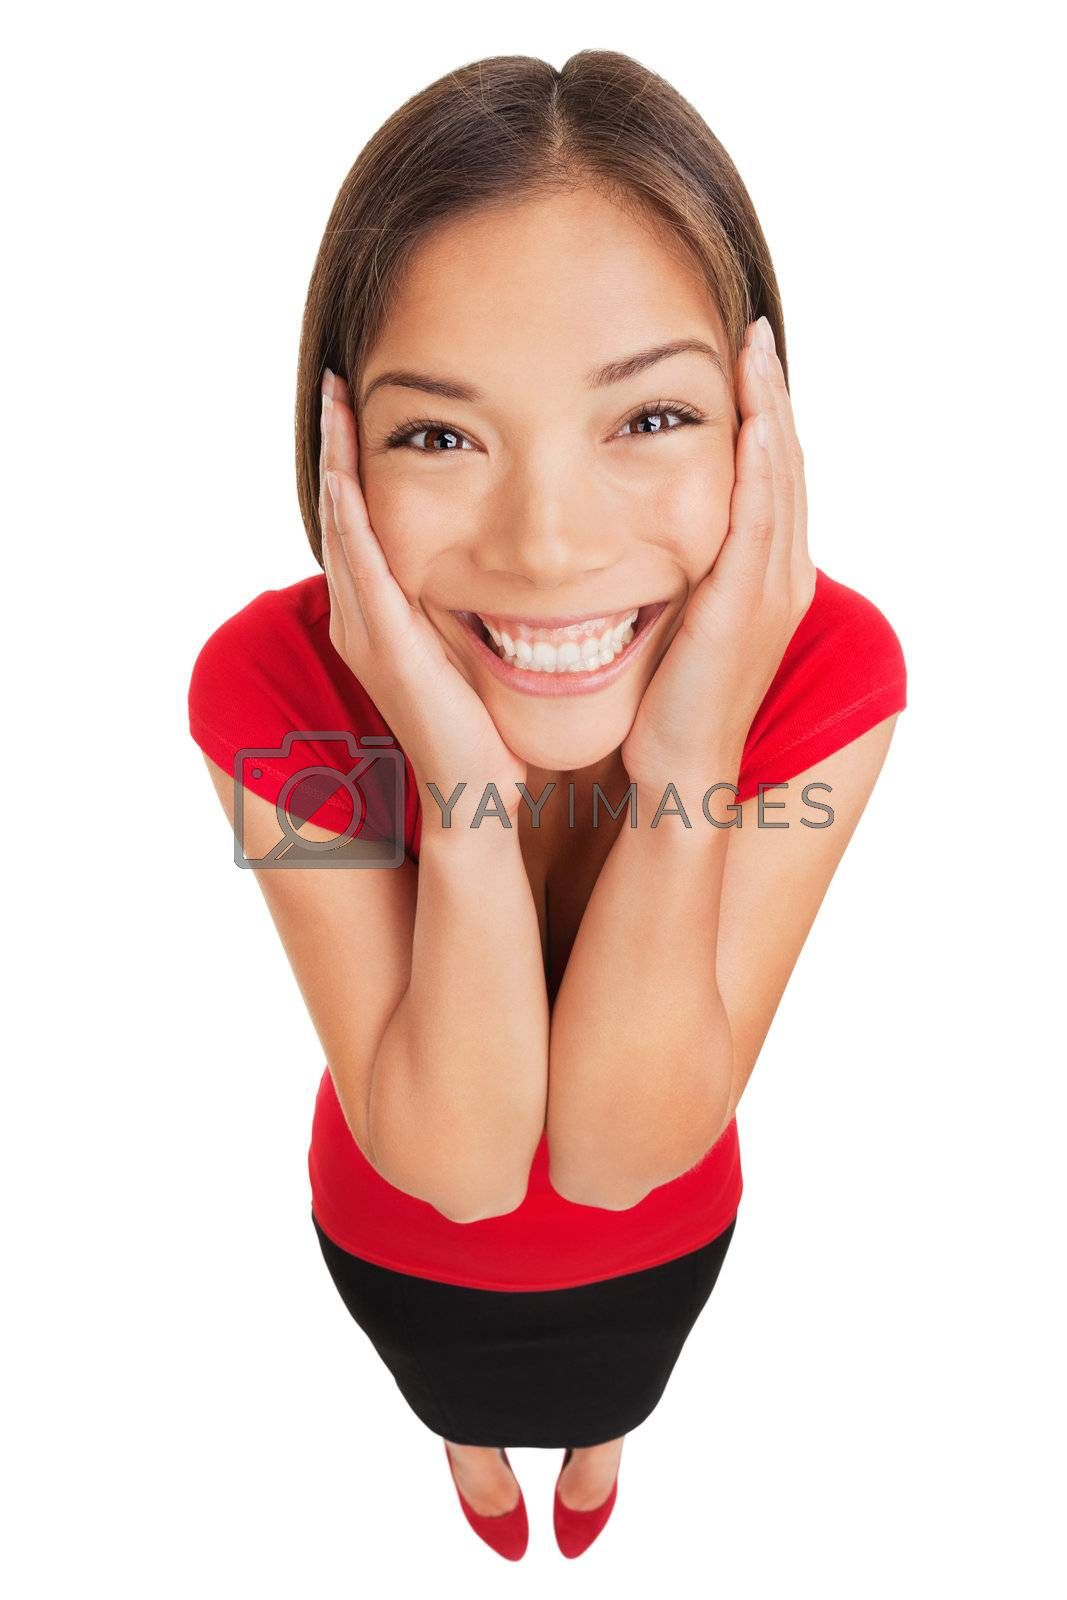 Happy woman overcome with joy holding her hands to her cheeks as she looks up at the camera lens with a beautiful smile, high angle full length studio portrait on white background. Multicultural model